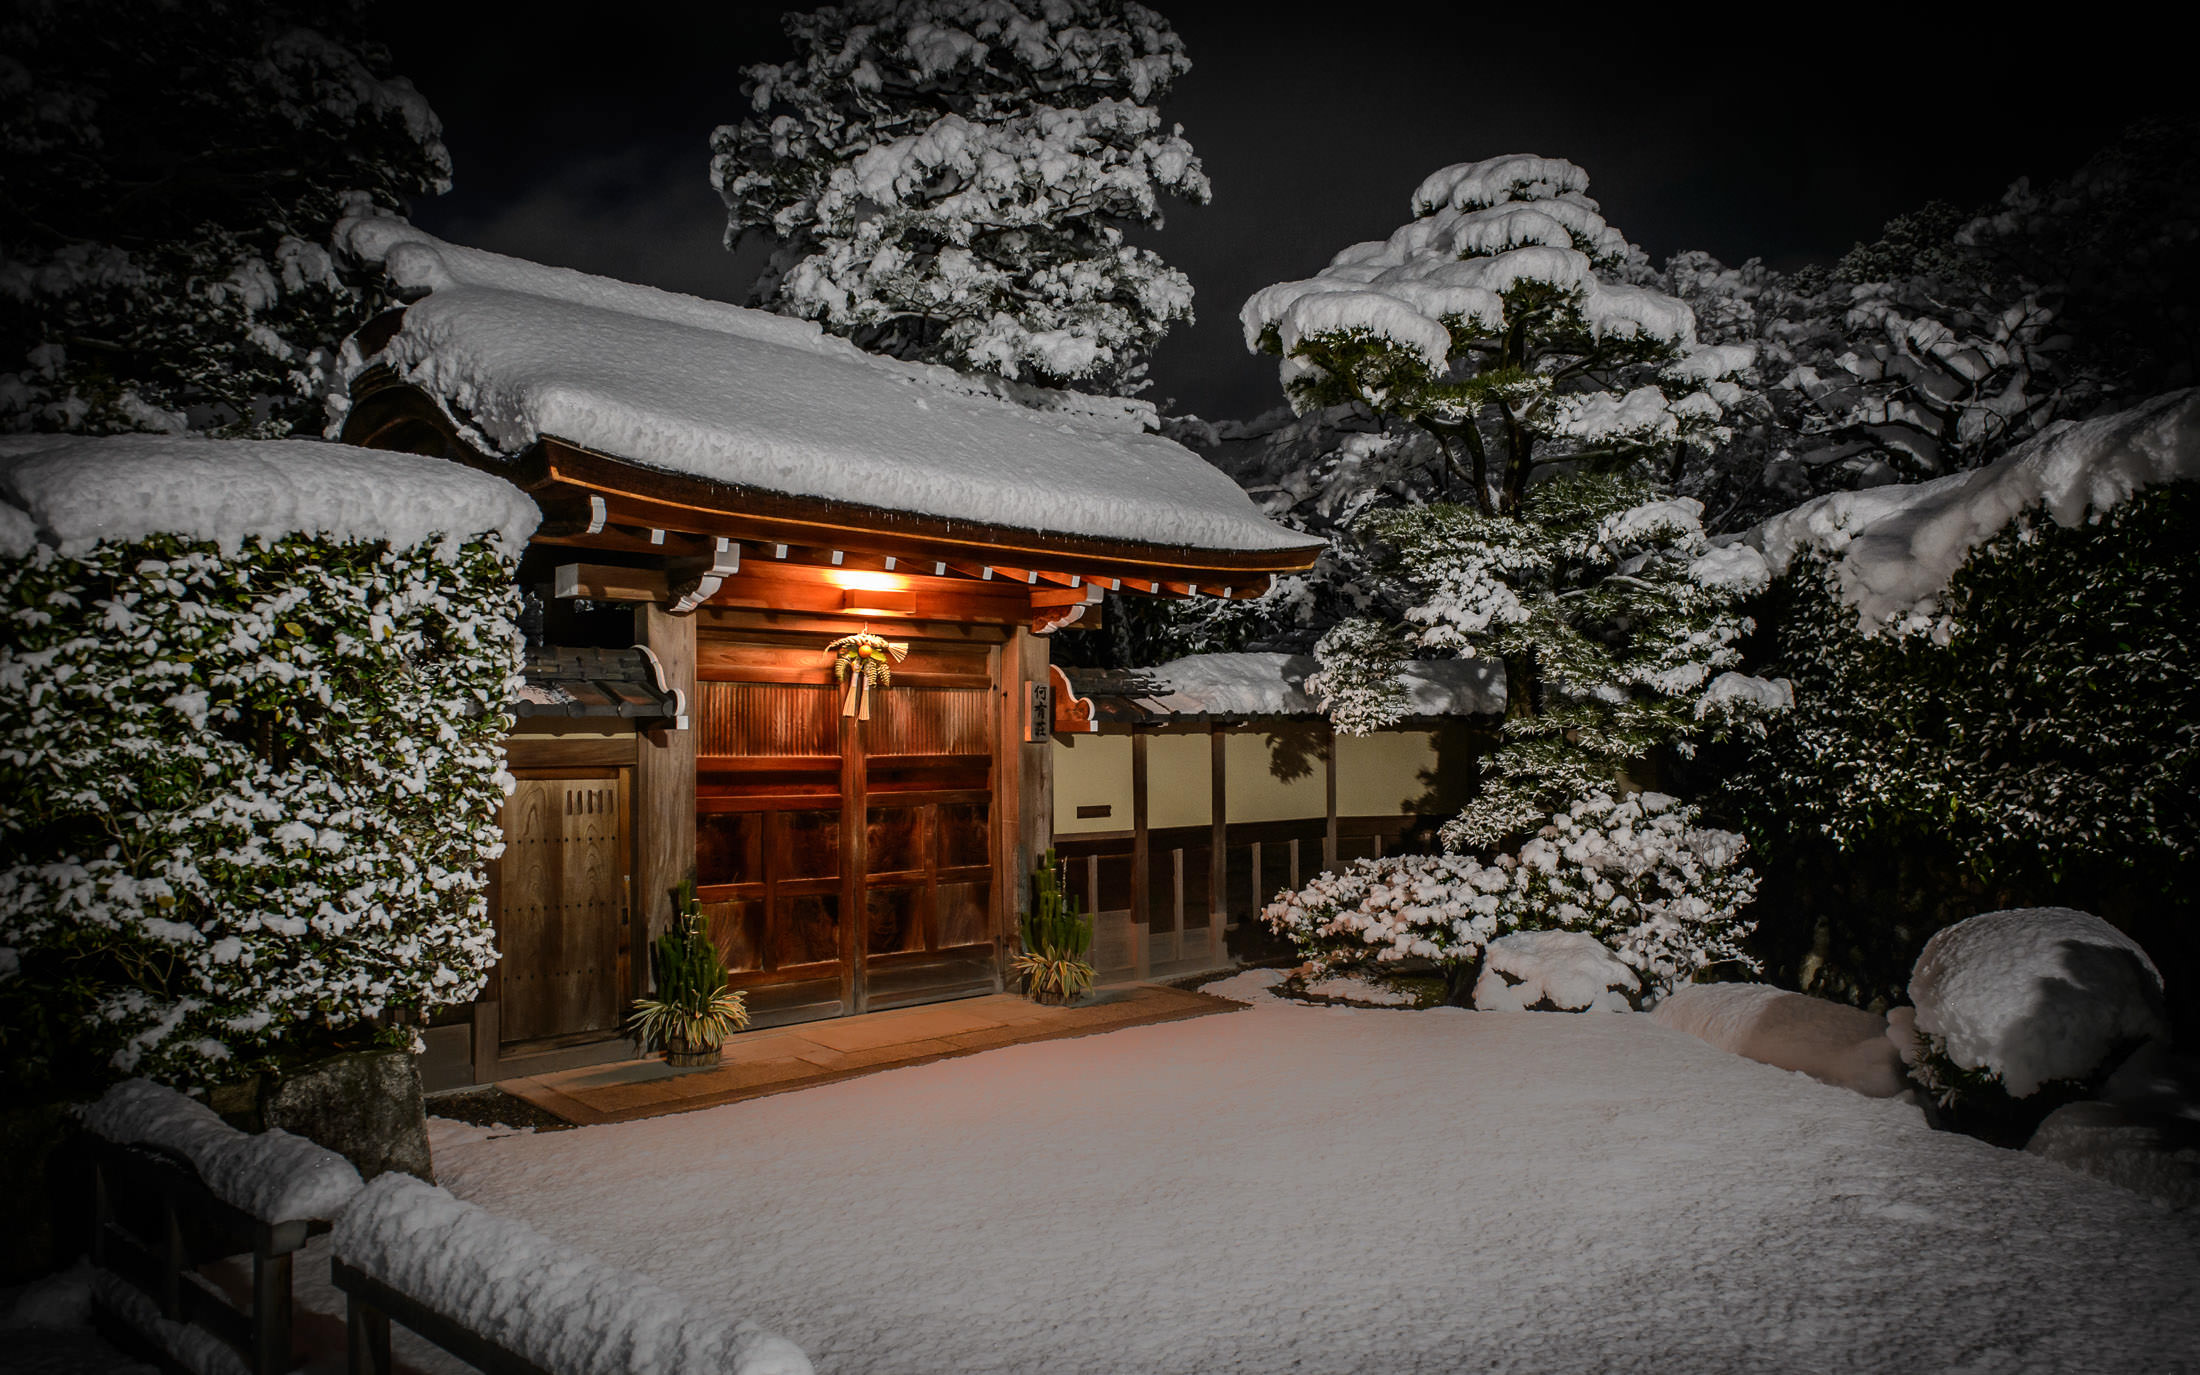 Snow Falling Wallpaper For Iphone Kyoto Wallpapers High Quality Download Free